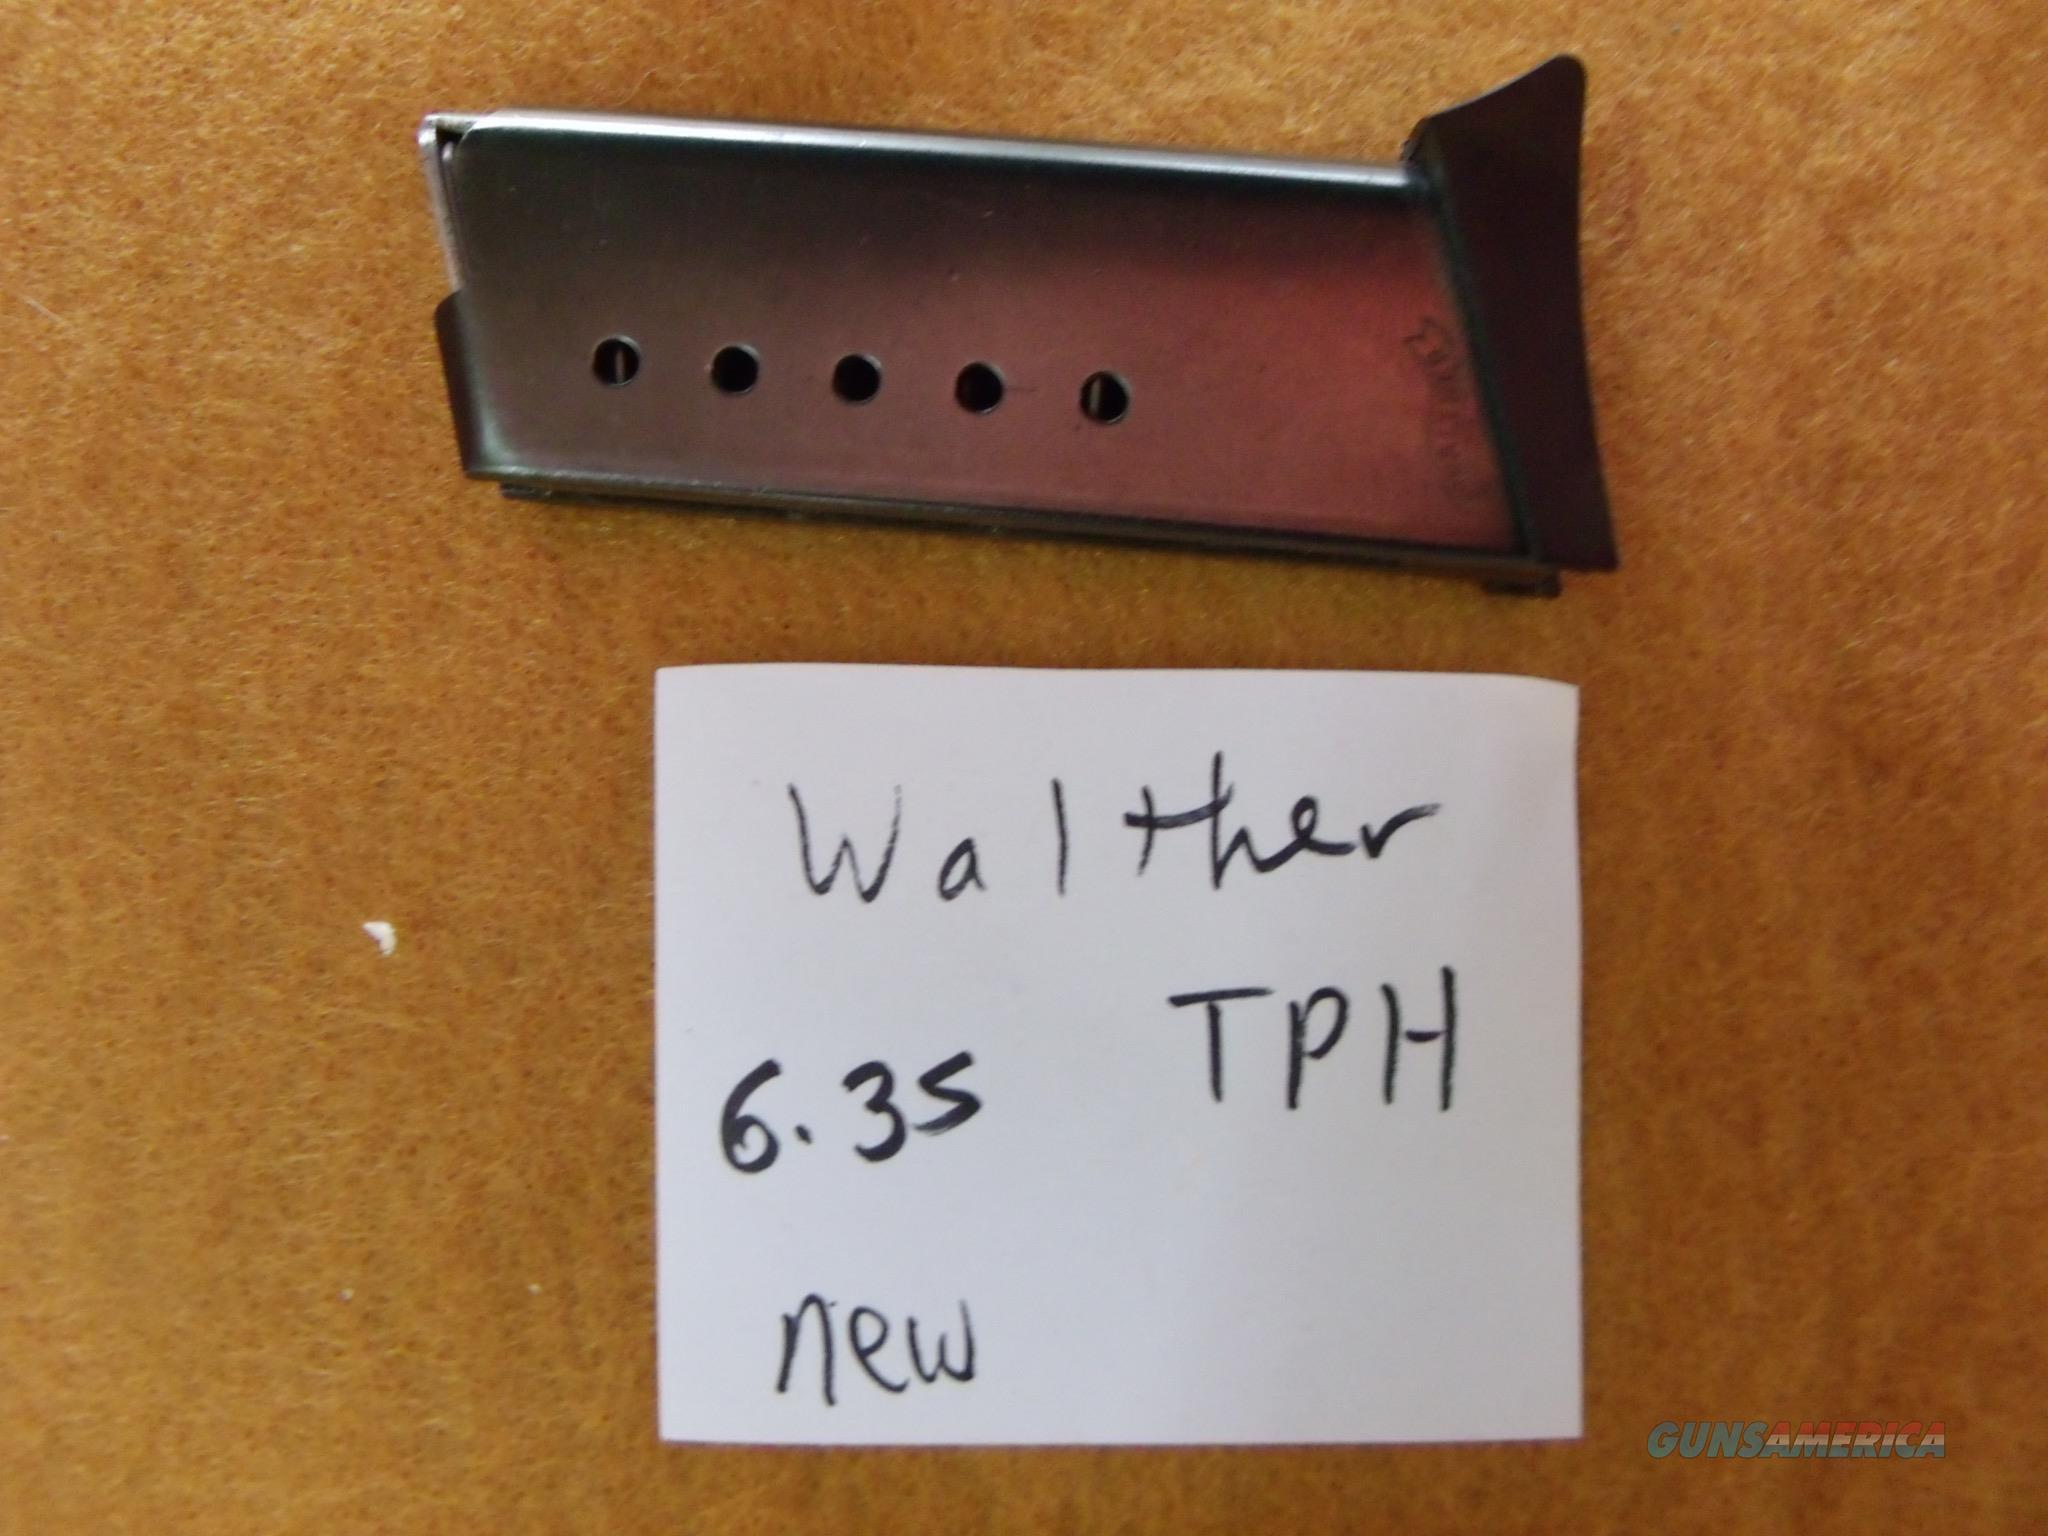 walther tph 6,35 25 auto new  Non-Guns > Magazines & Clips > Pistol Magazines > Other